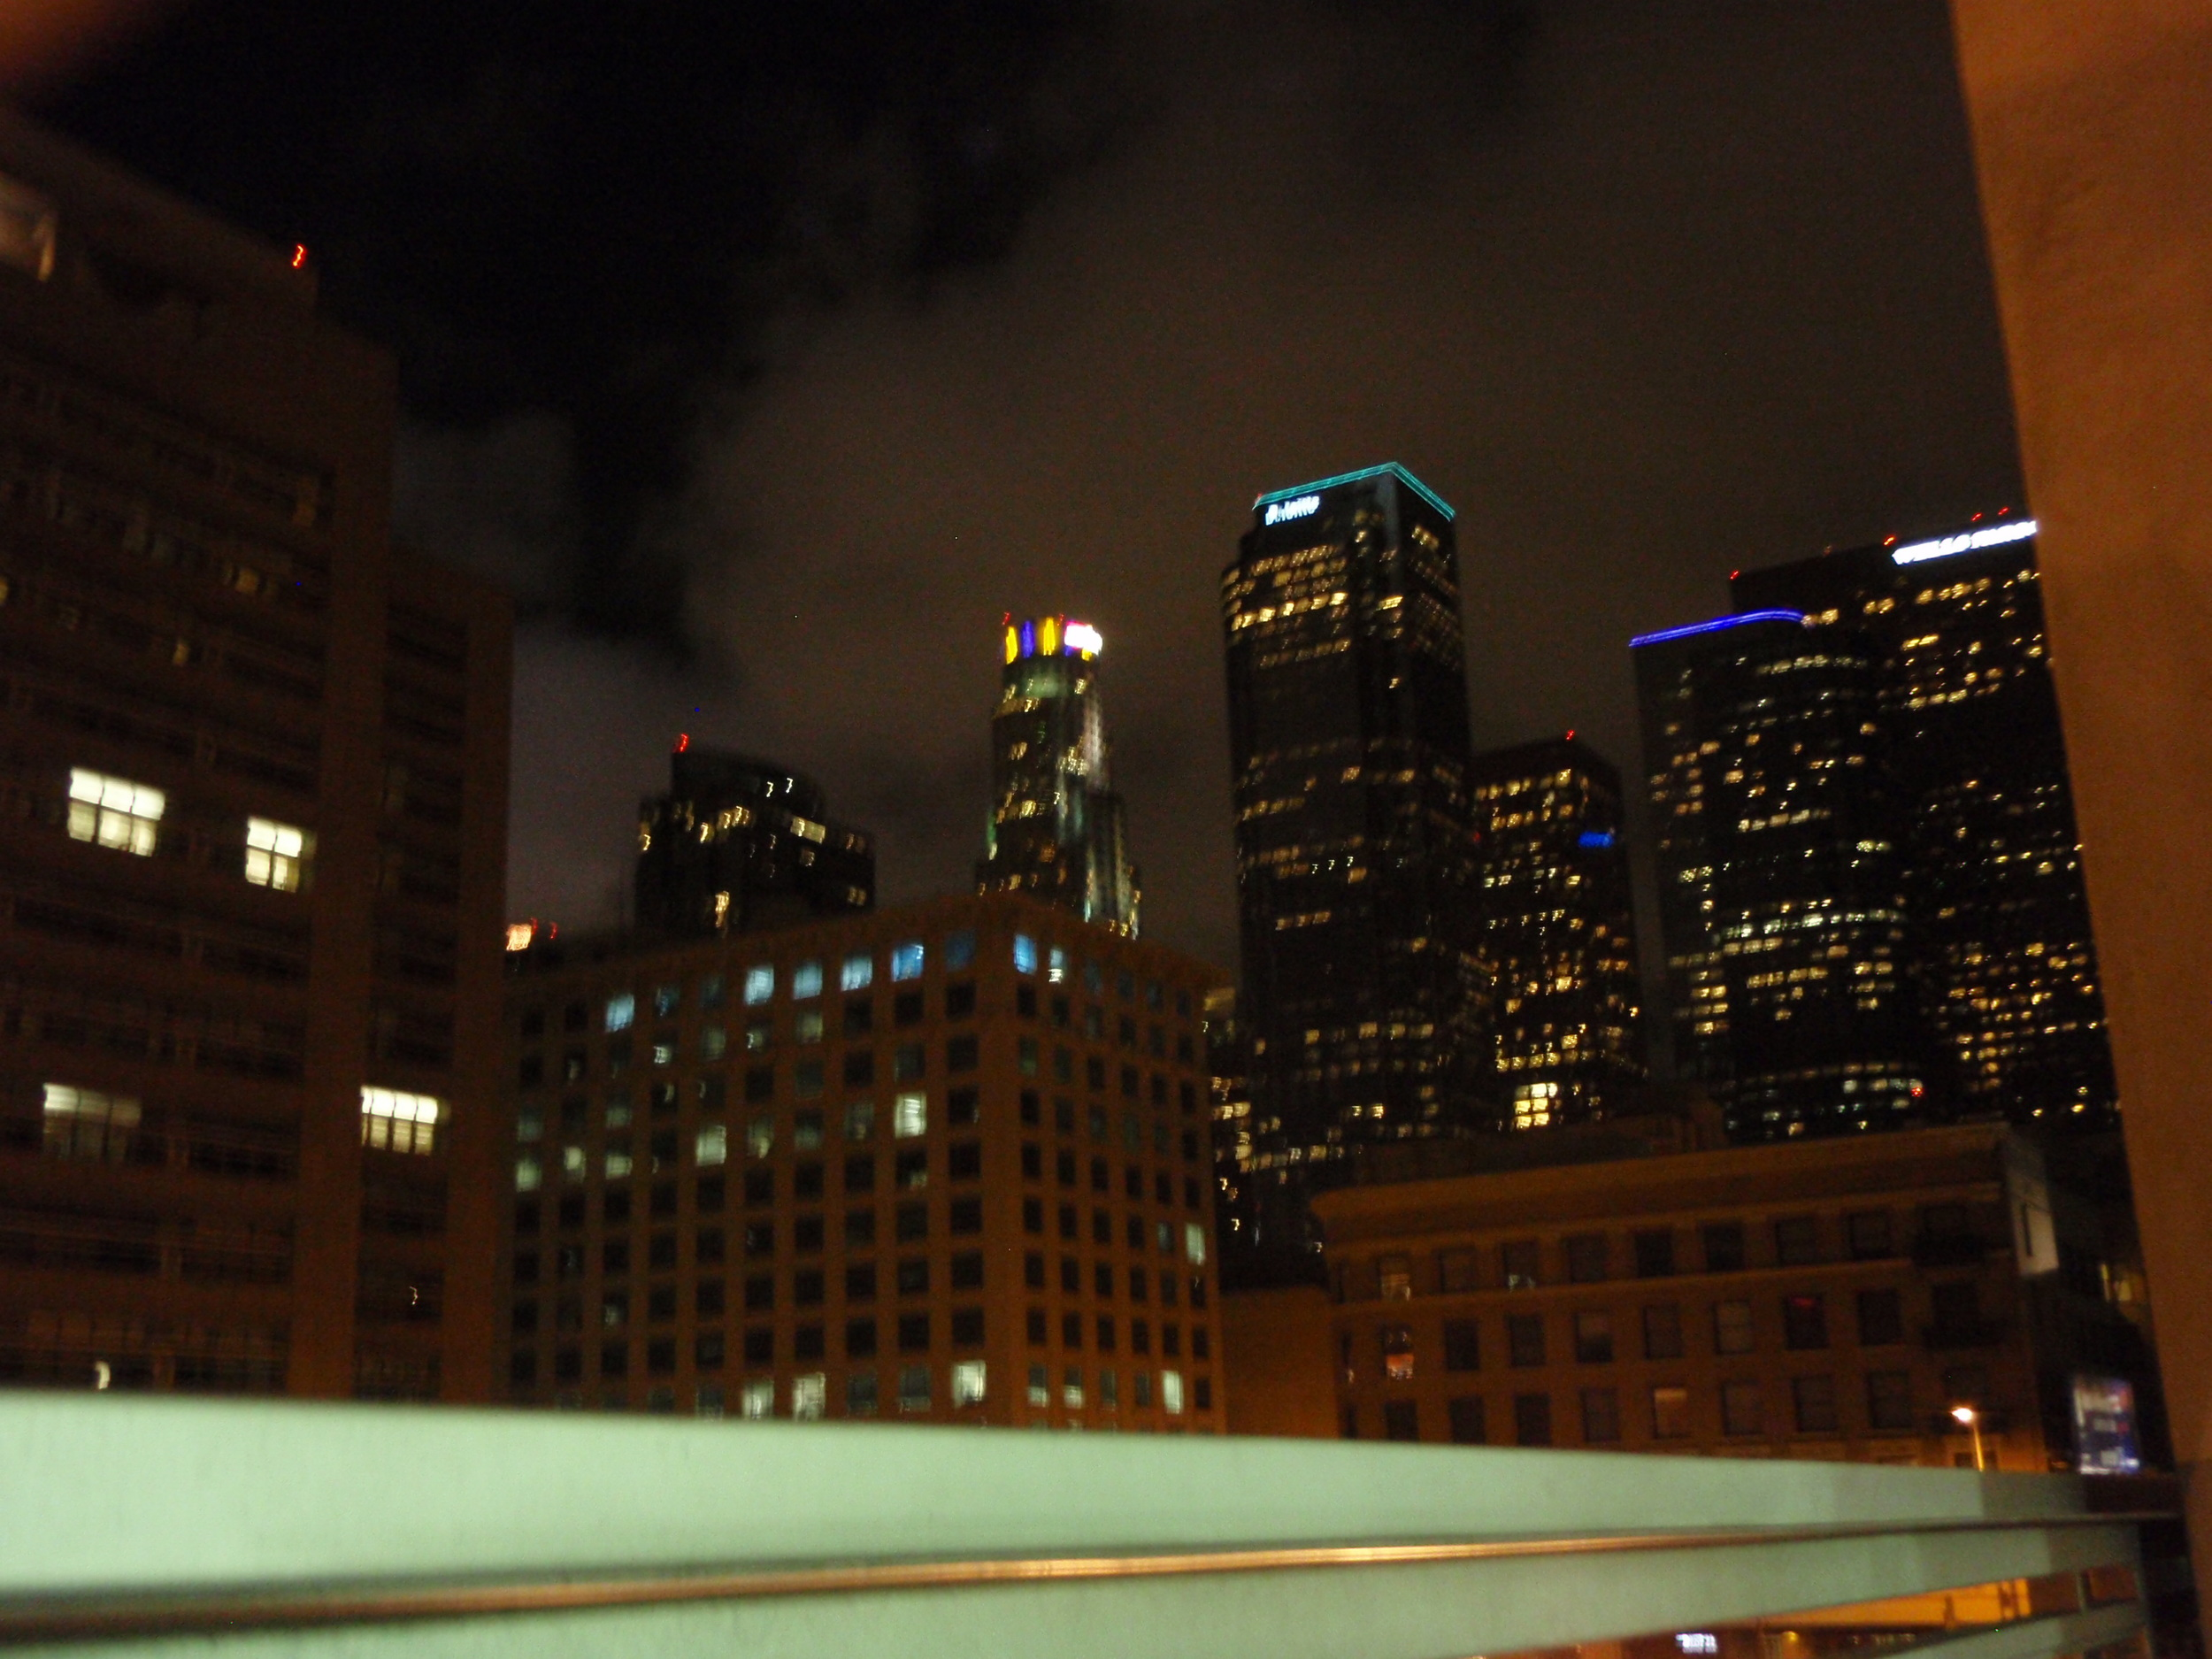 View from the rooftop - US Bank has Laker colors shining bright